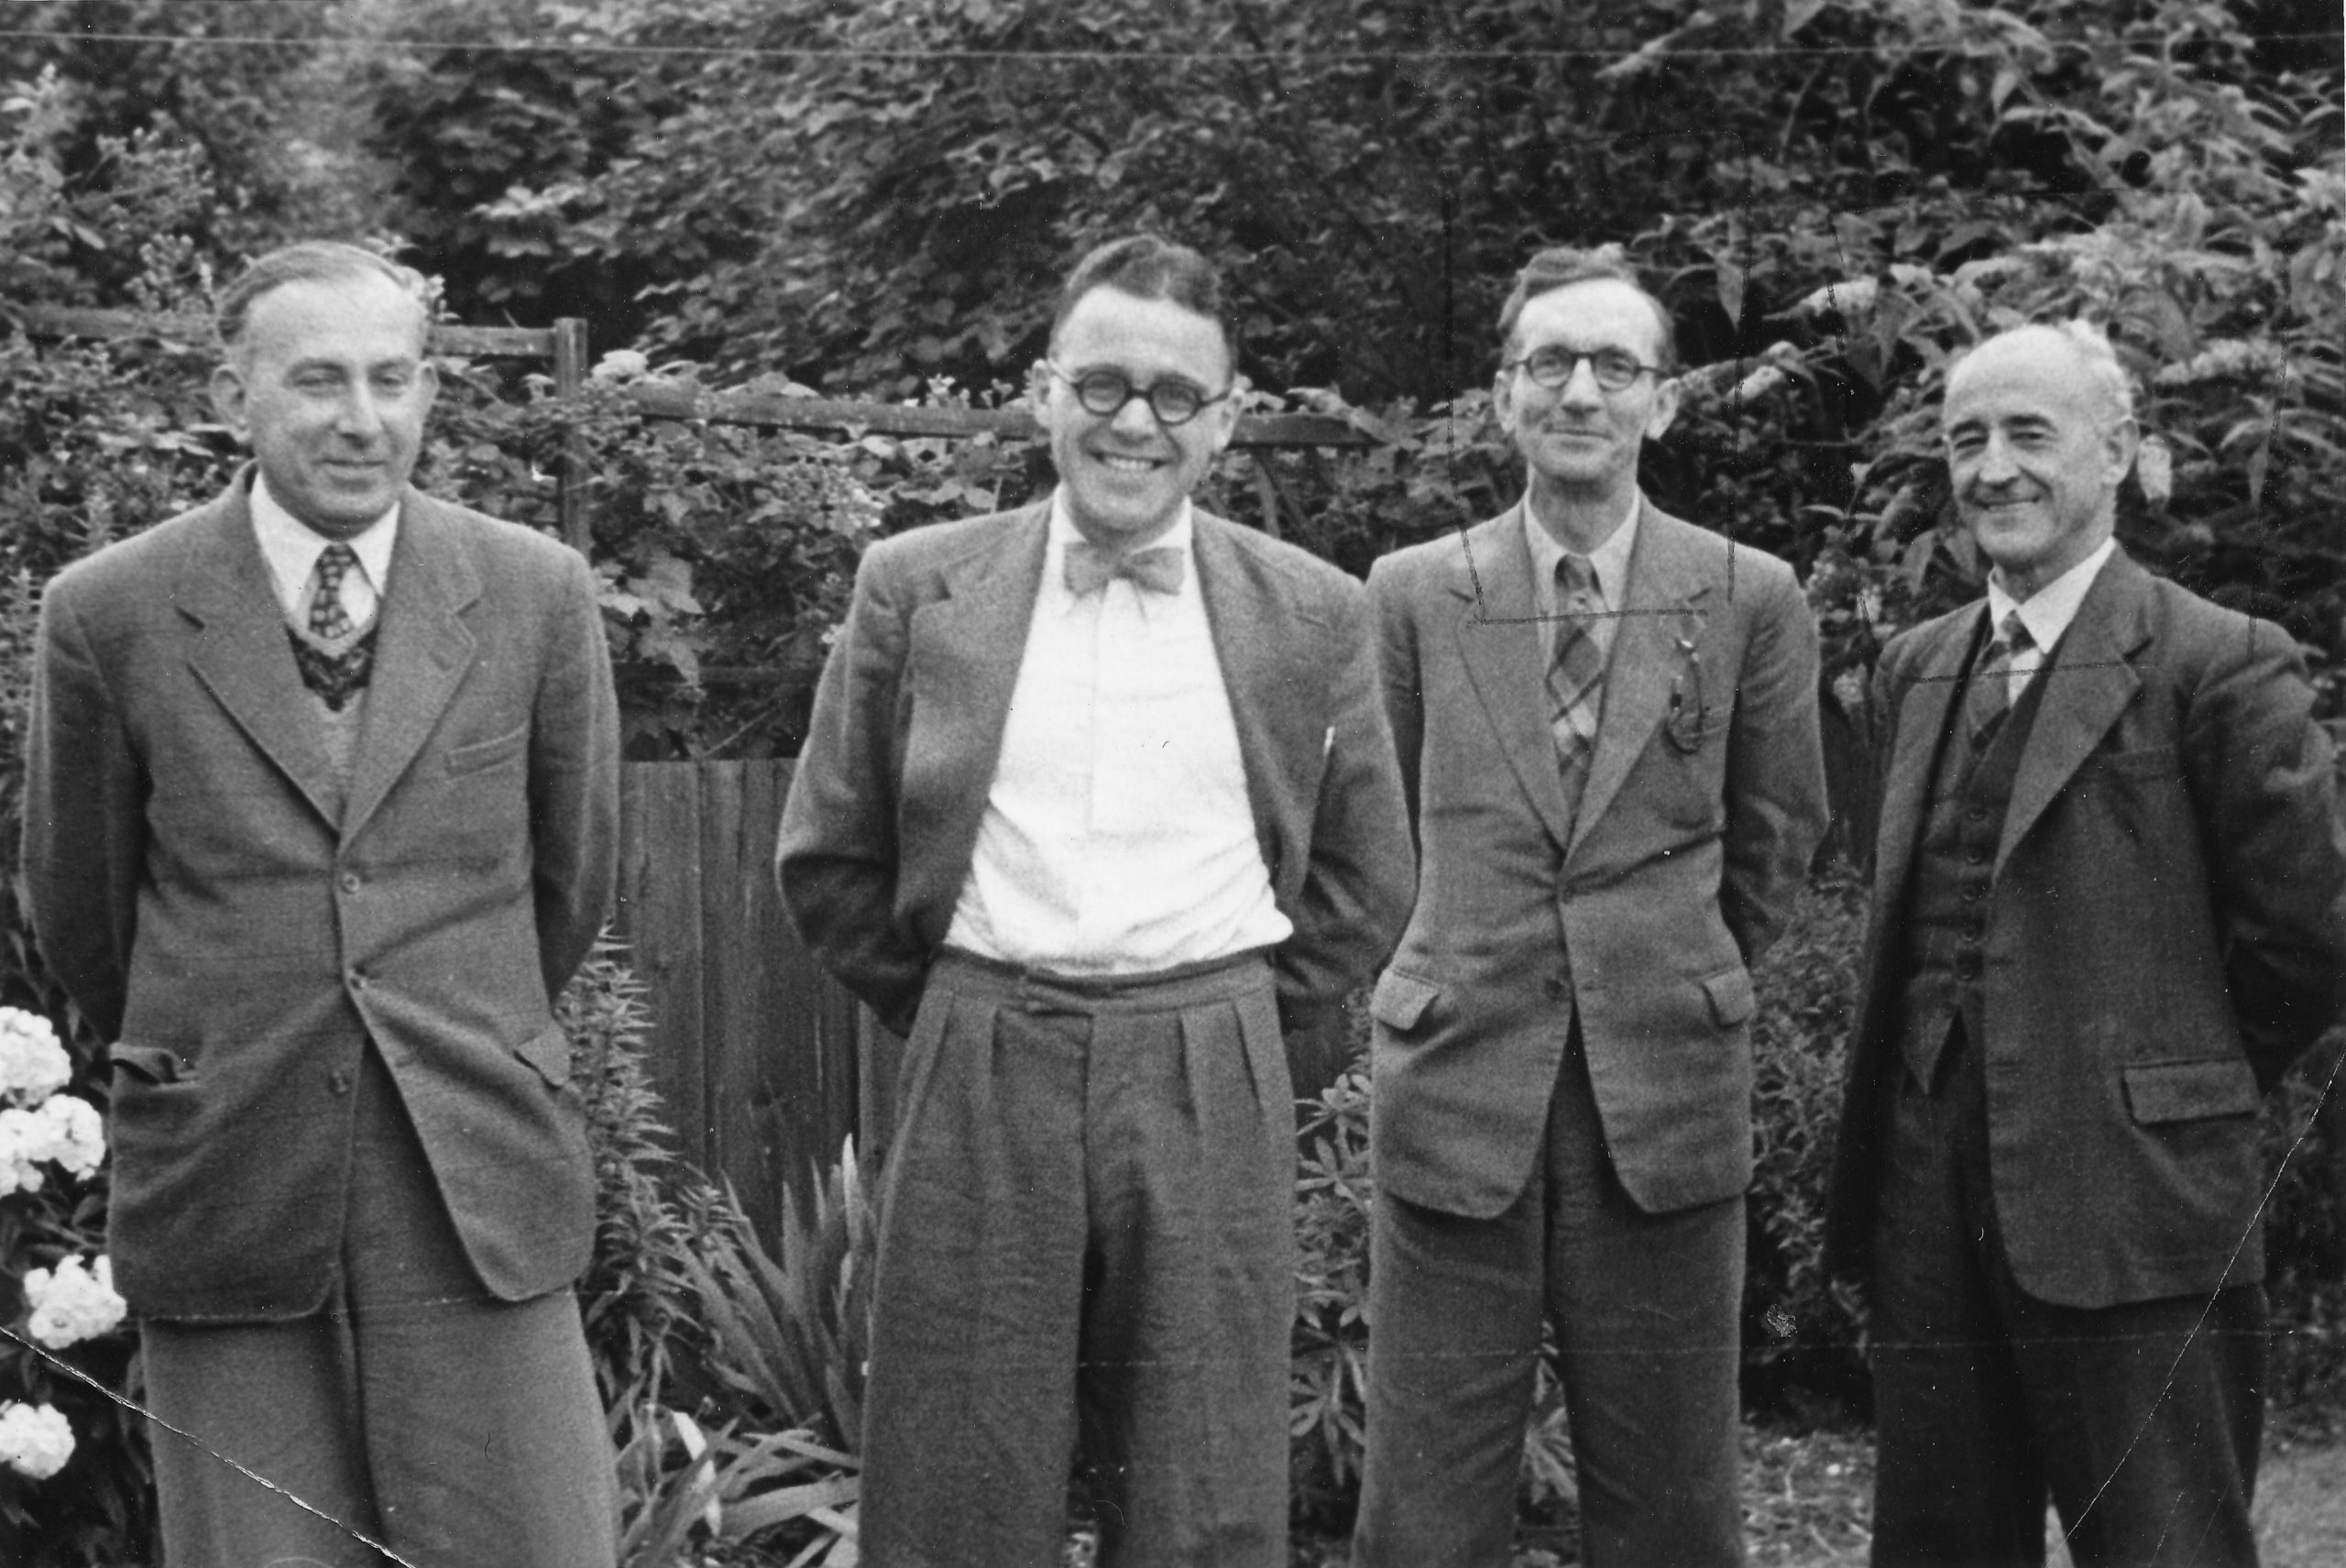 Harry Golombek, Stanley Sedgwick, Brian Reilly and DJ Morgan in the garden of Brian Reilly. Photo probably taken by Freddy Reilly.